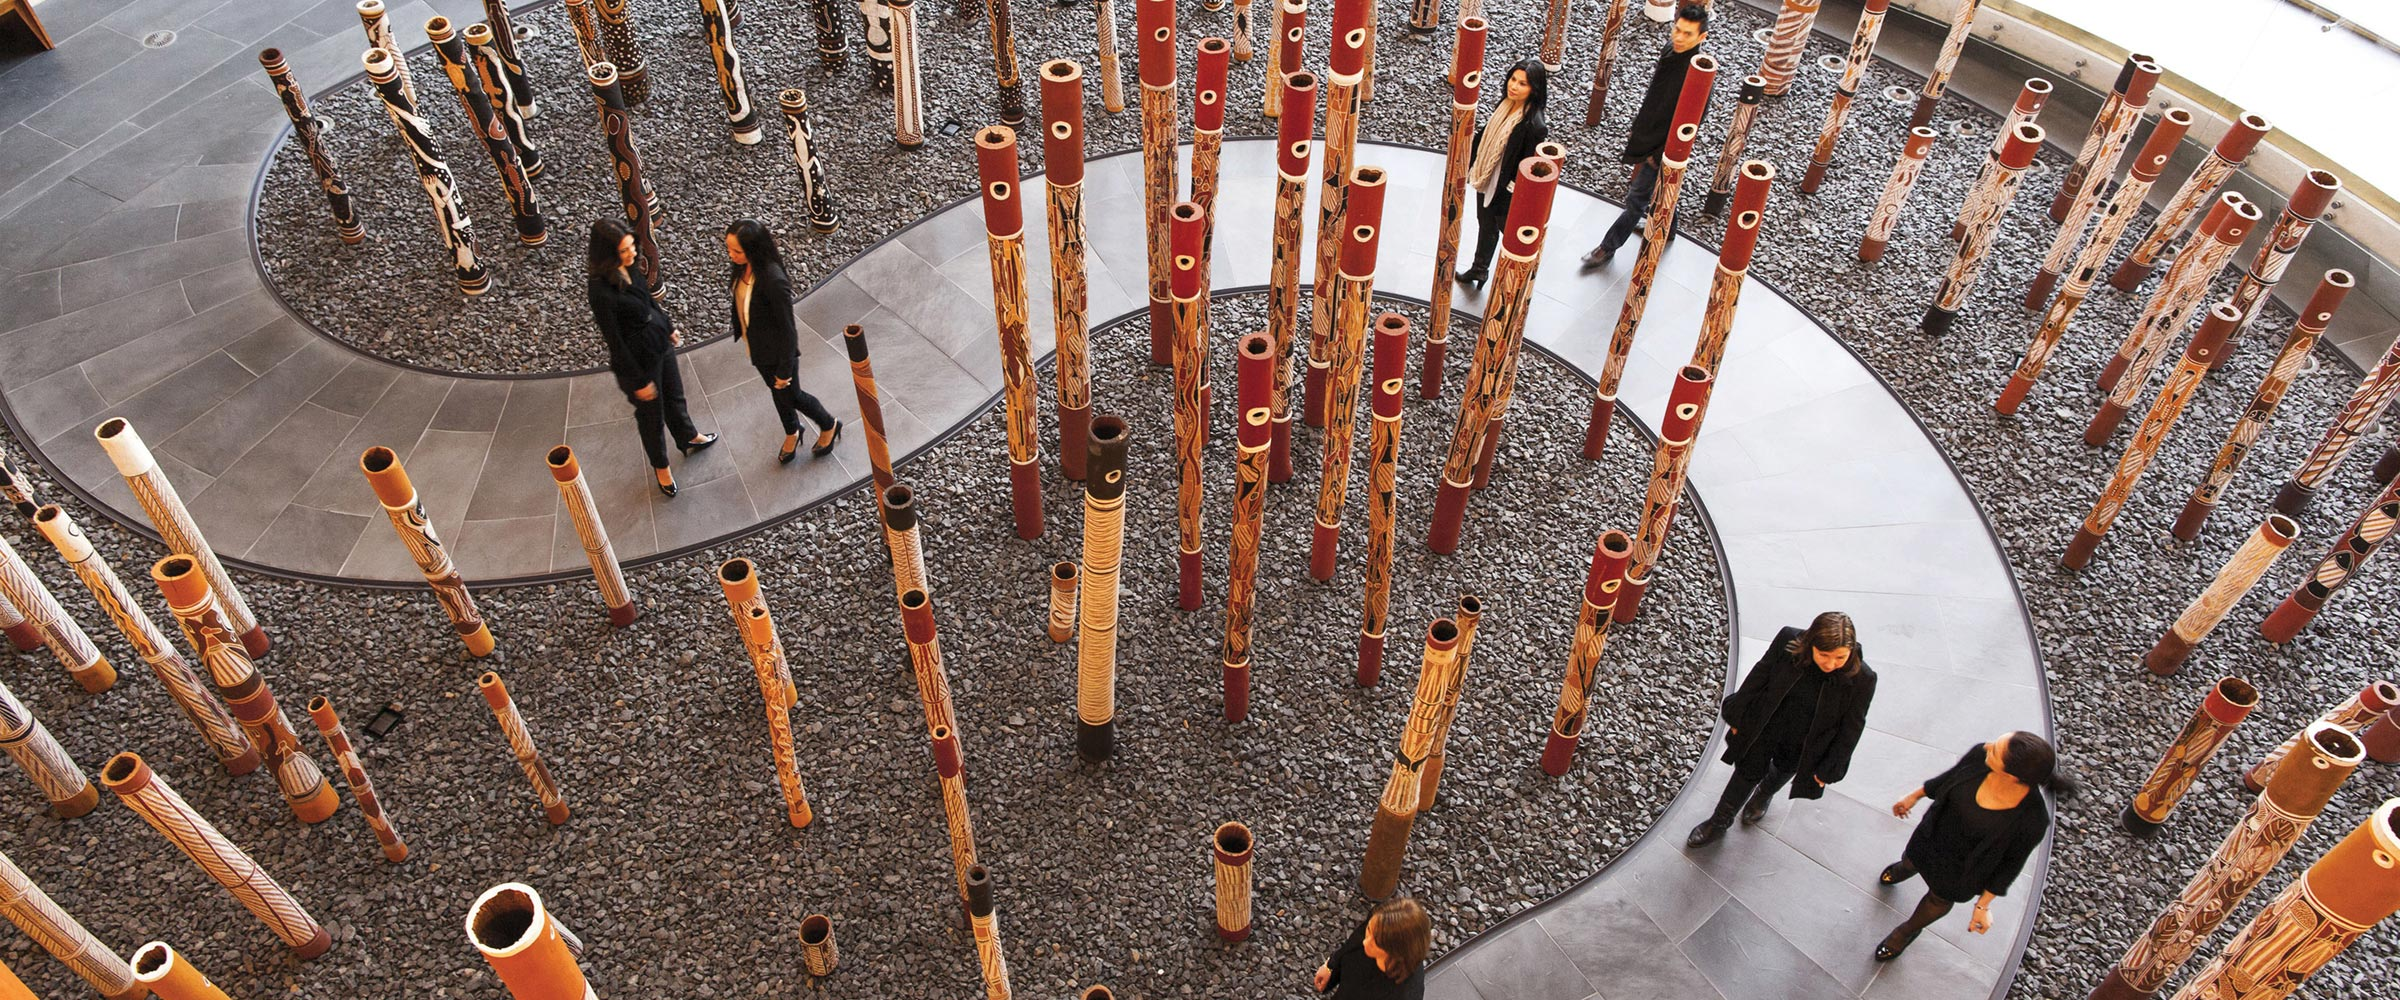 The Aboriginal Memorial at the National Gallery of Australia